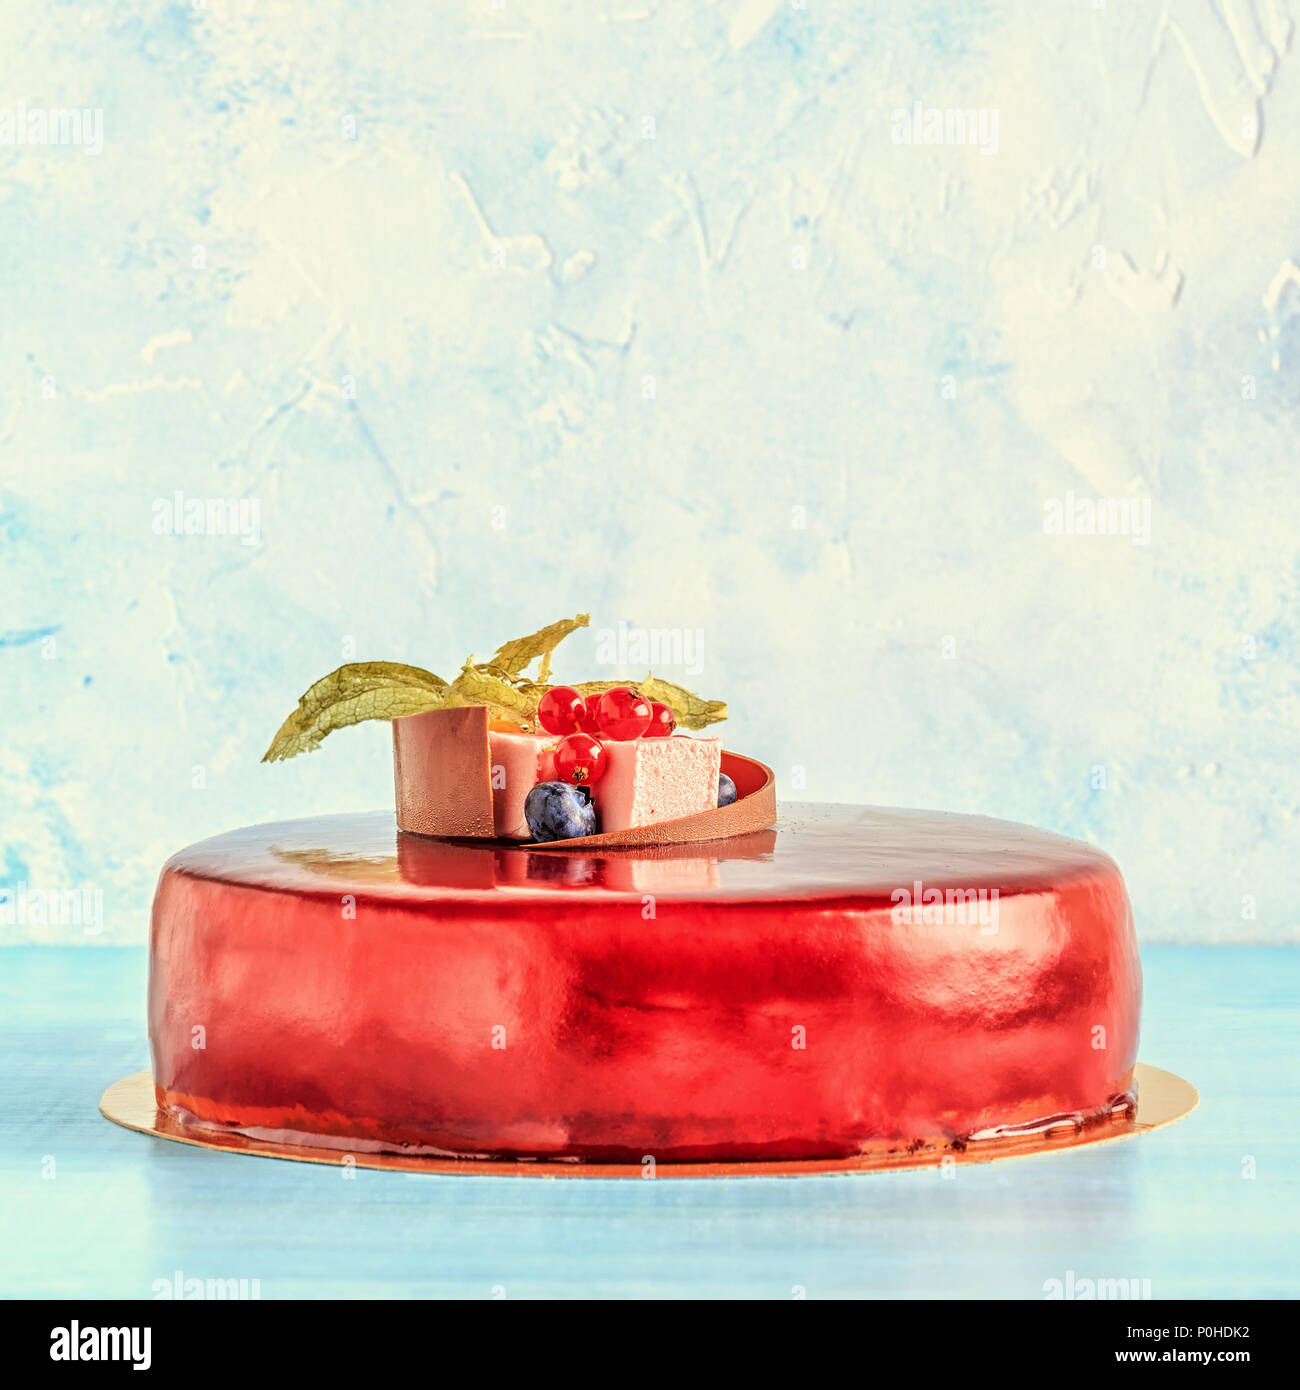 Red Cream Icing Cake with Fruits and Chocolate. Birthday cake. - Stock Image